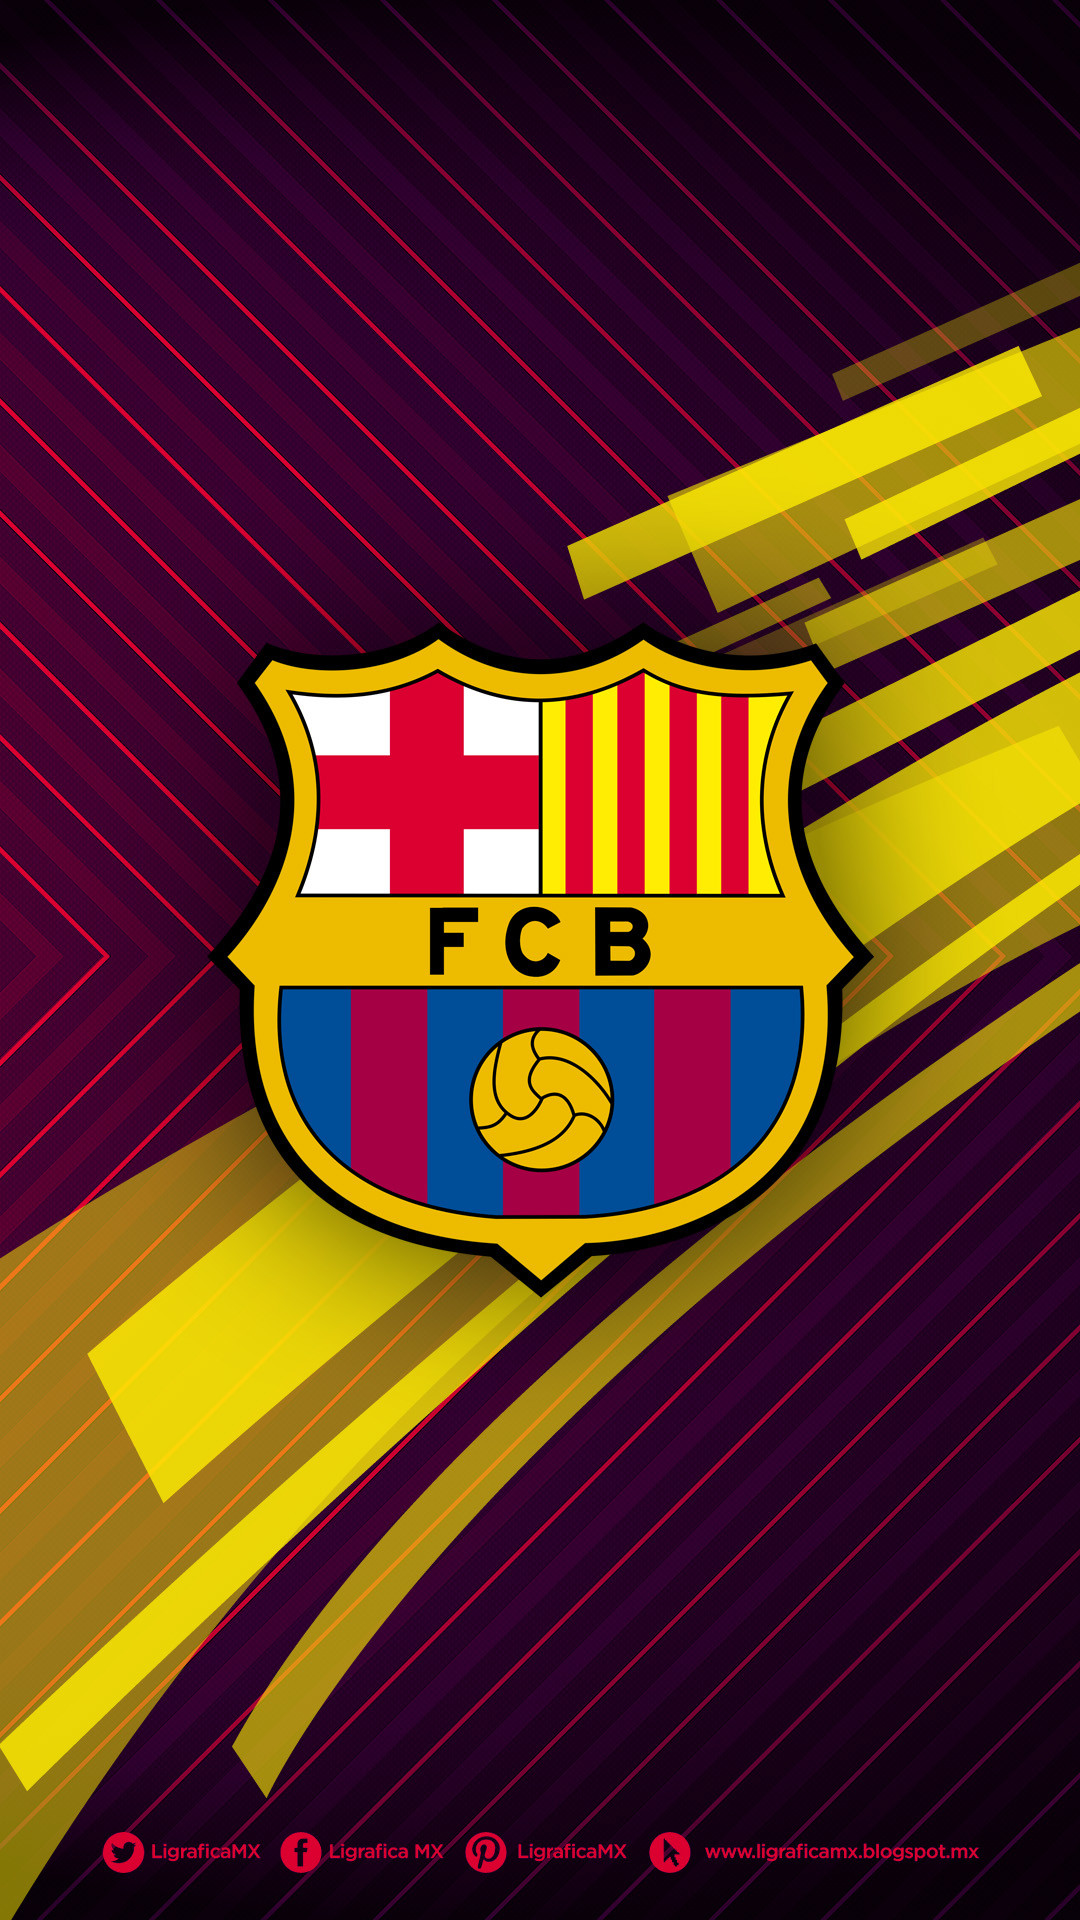 Wallpaper Del Barcelona Posted By Christopher Thompson